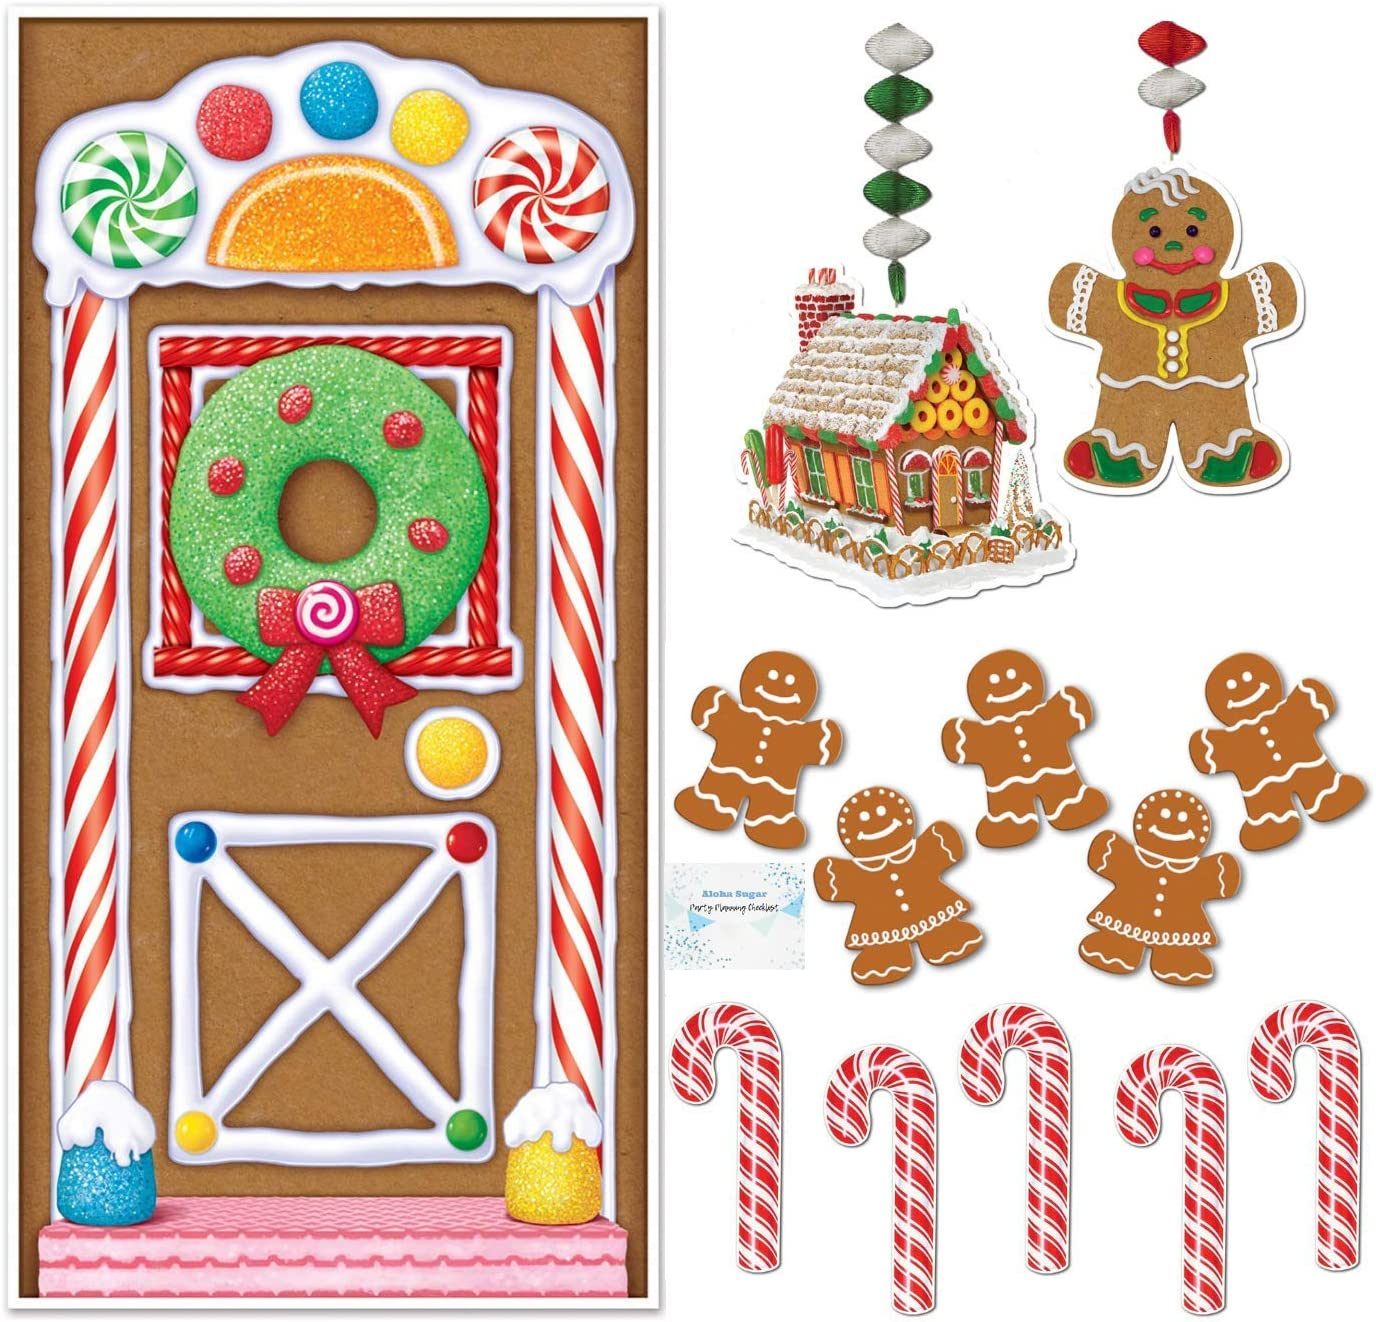 Gingerbread House Decorations - Gingerbread Door Cover - Candy Cane Decorations - Gingerbread Decorations - Perfect Candy Christmas Decorations!